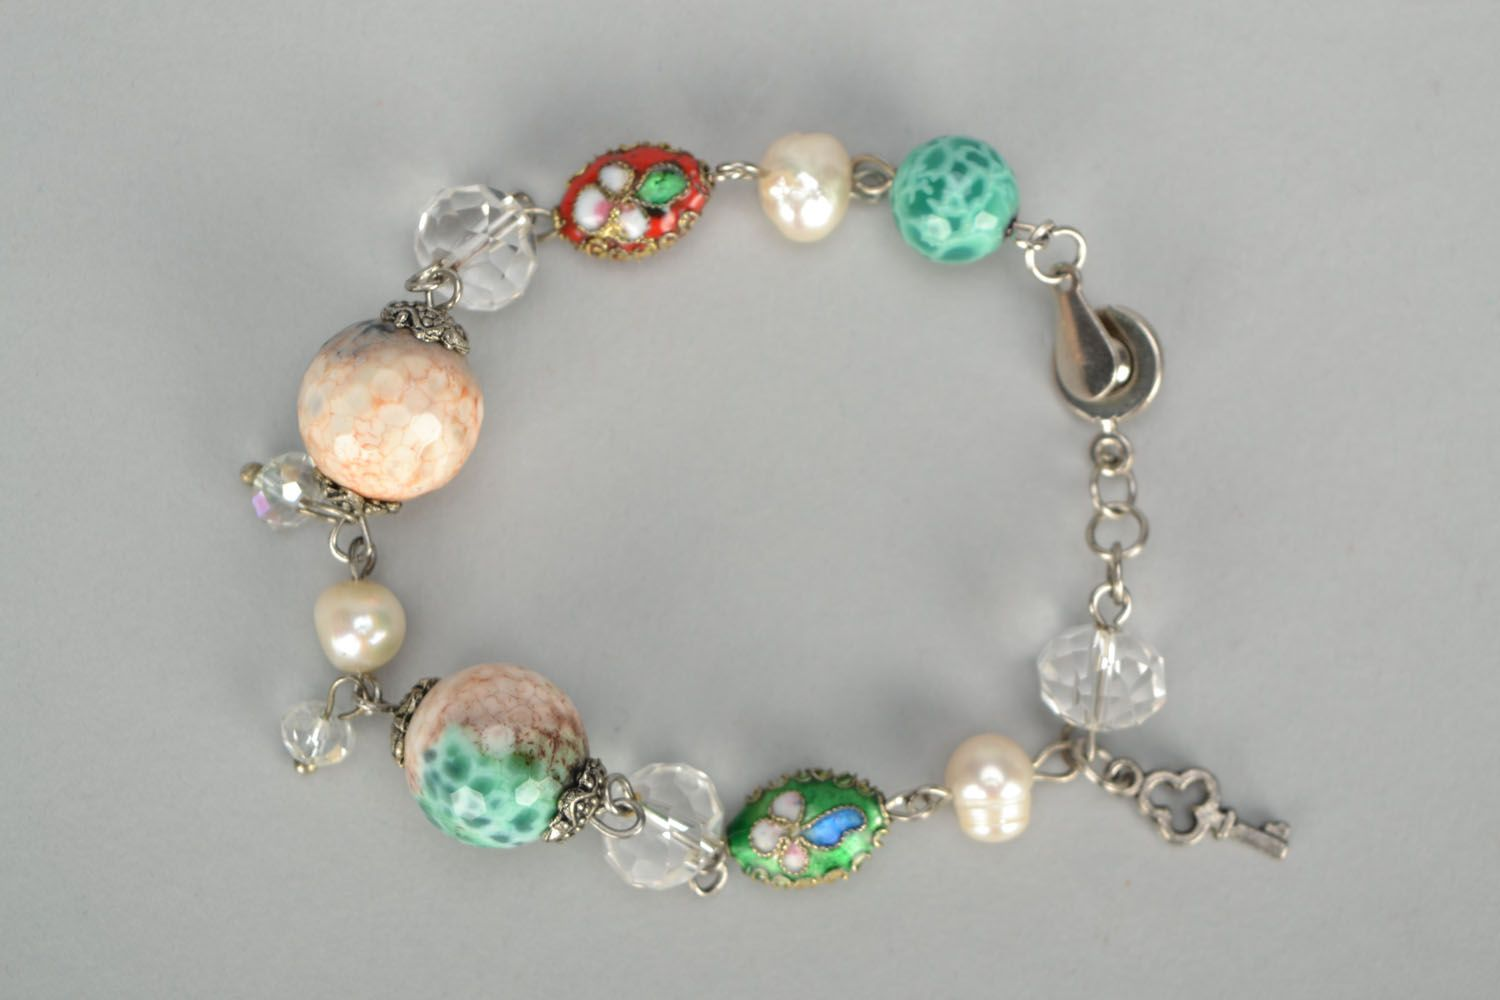 Bracelet with agate and river pearls photo 3